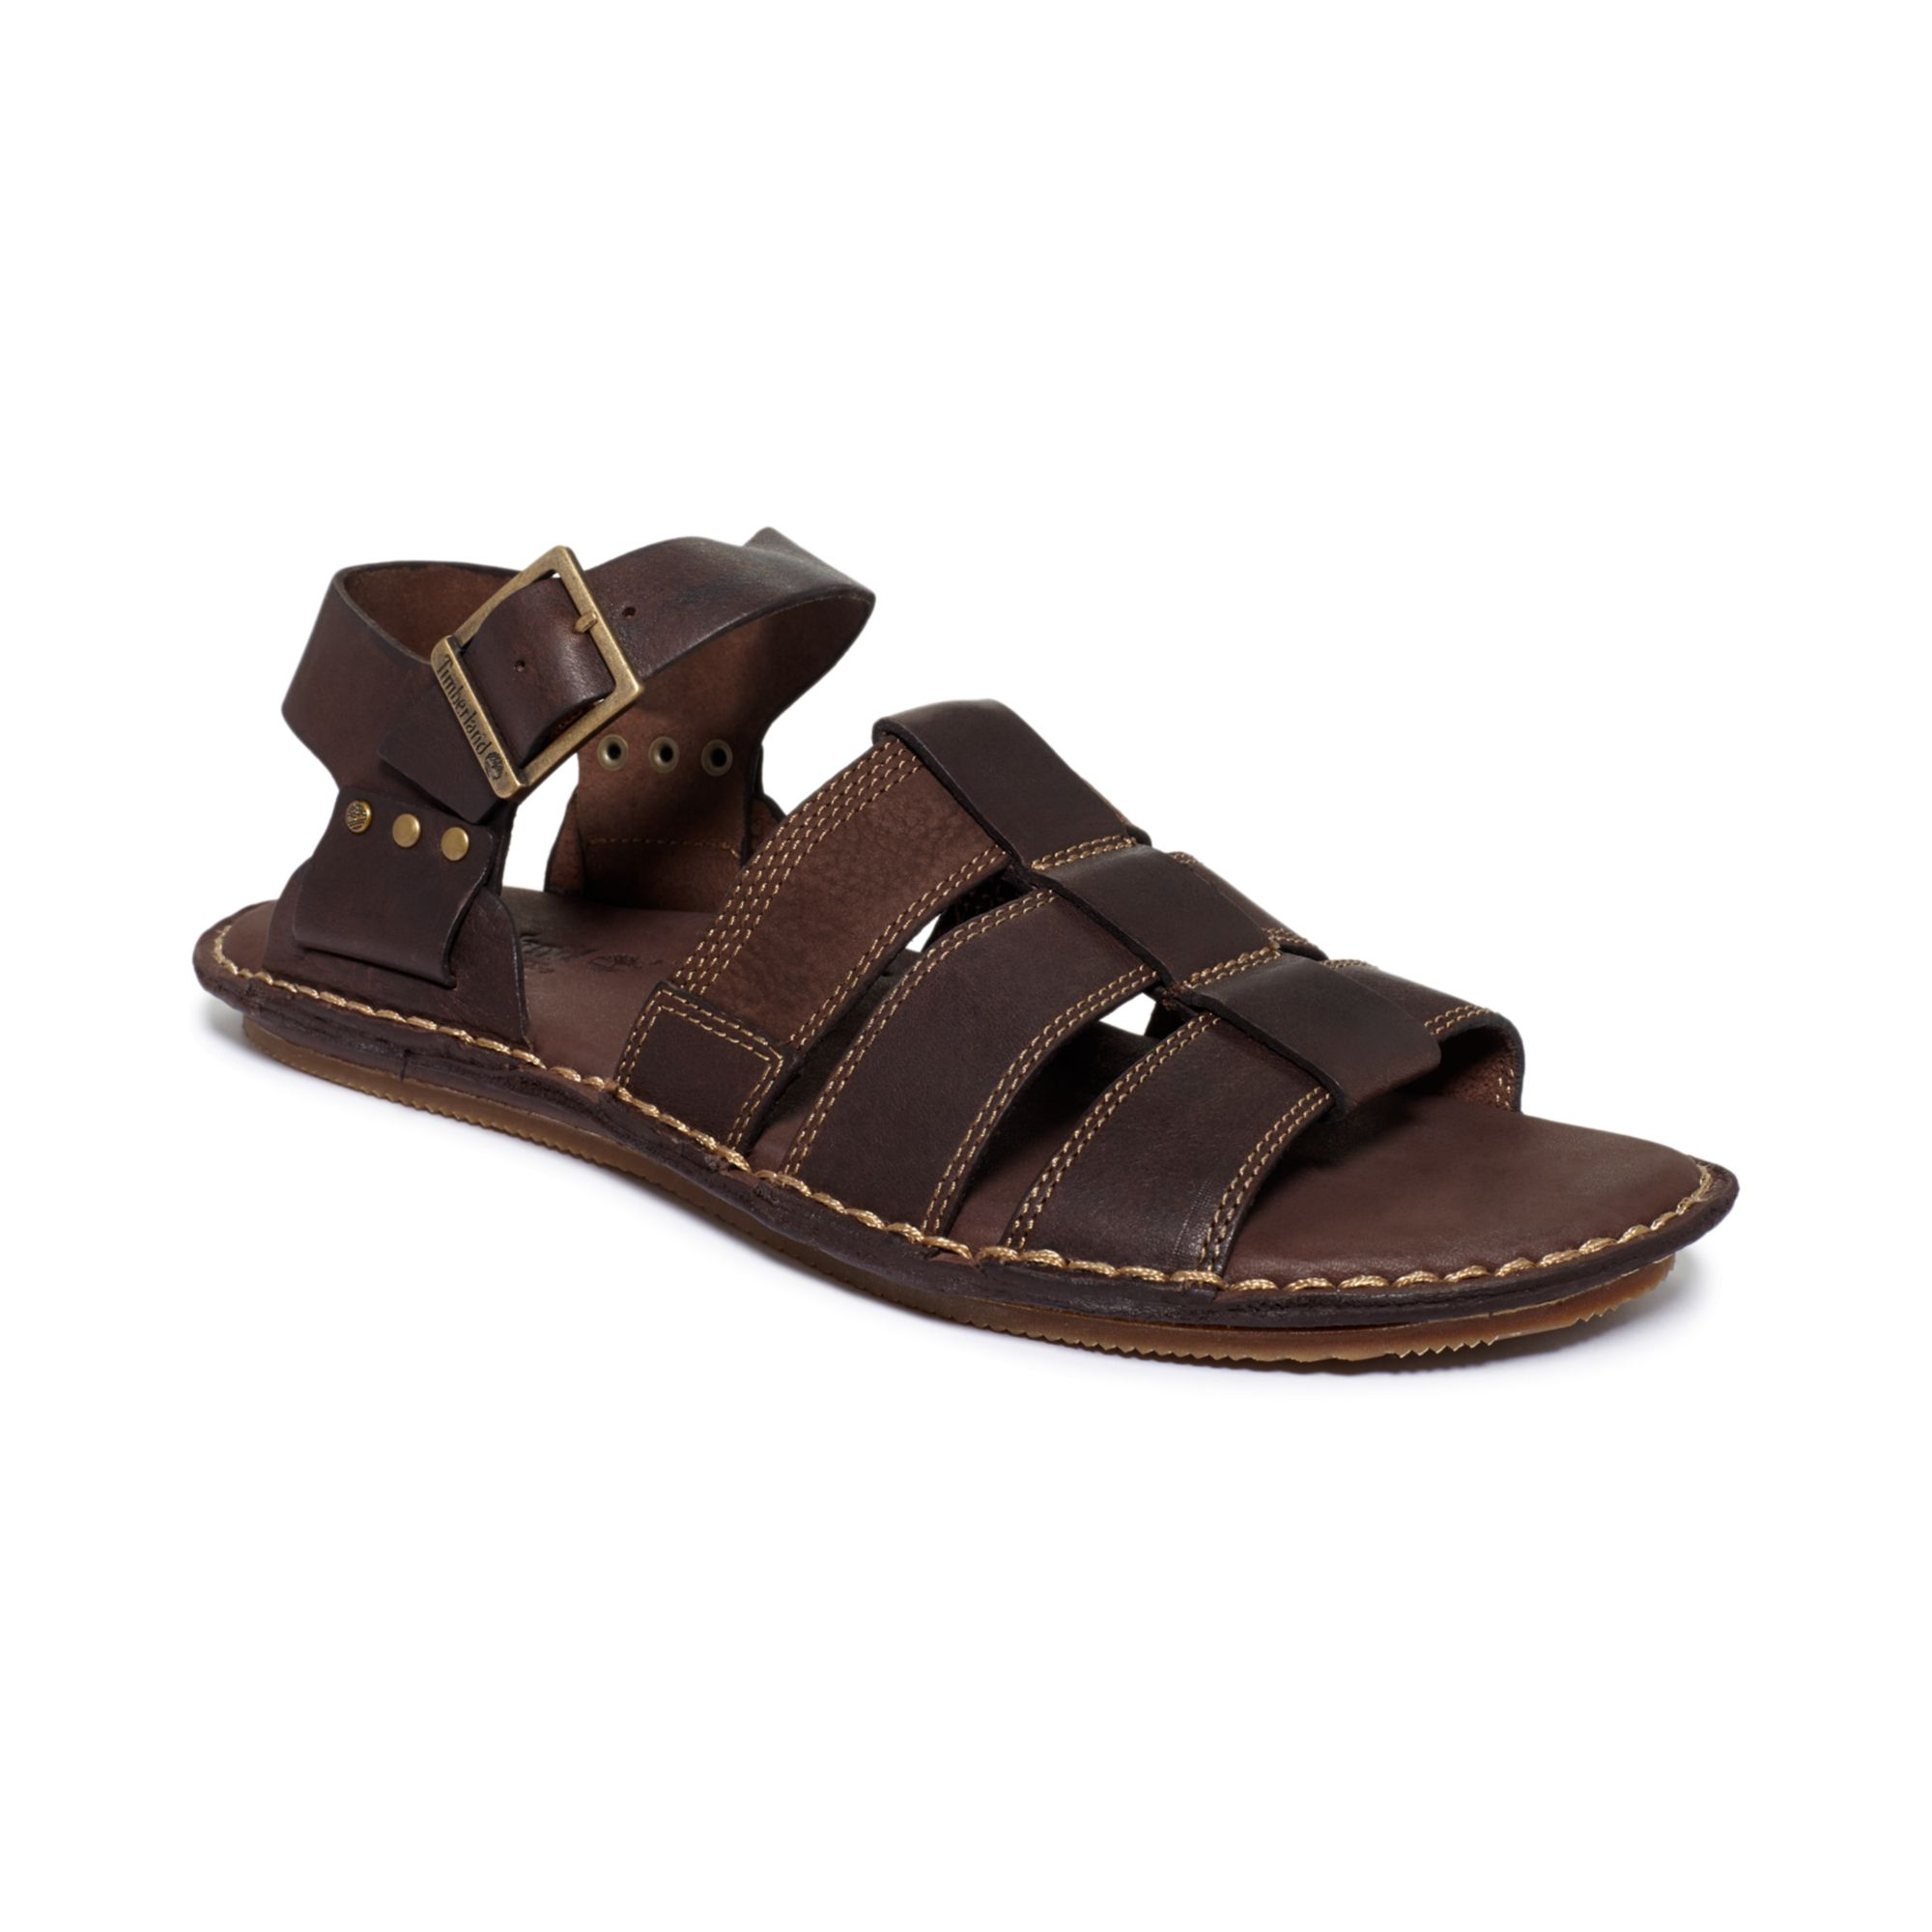 a90166baf08 ... Lyst - Timberland Harbor Point Fisherman Sandals in Brown for Men ...